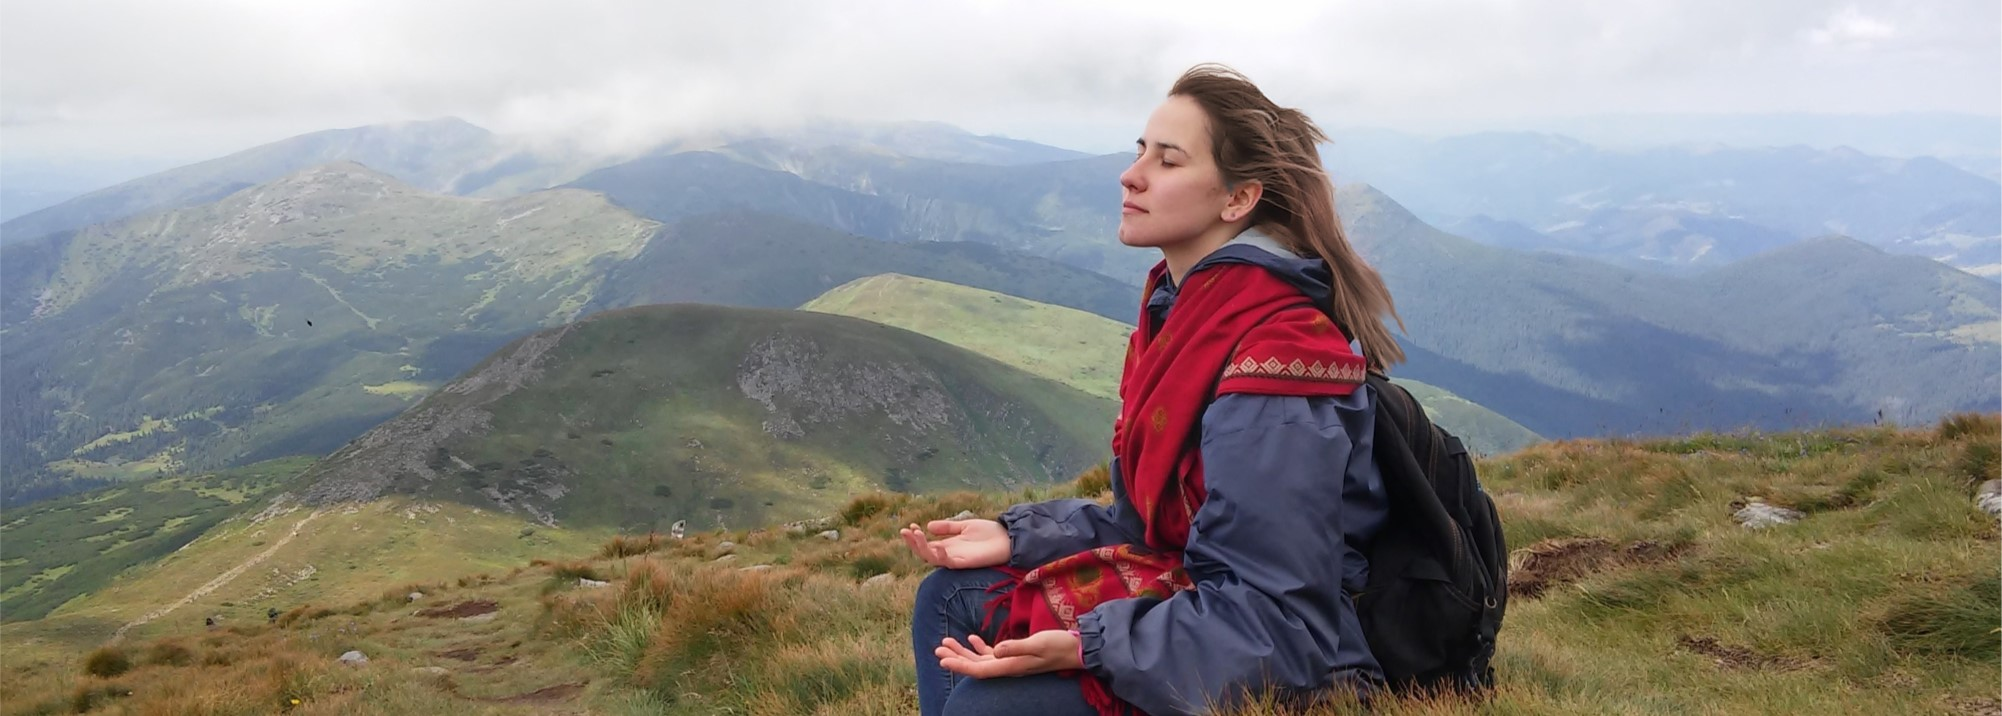 What are some helpful tips for meditation? How can I better relax? 3